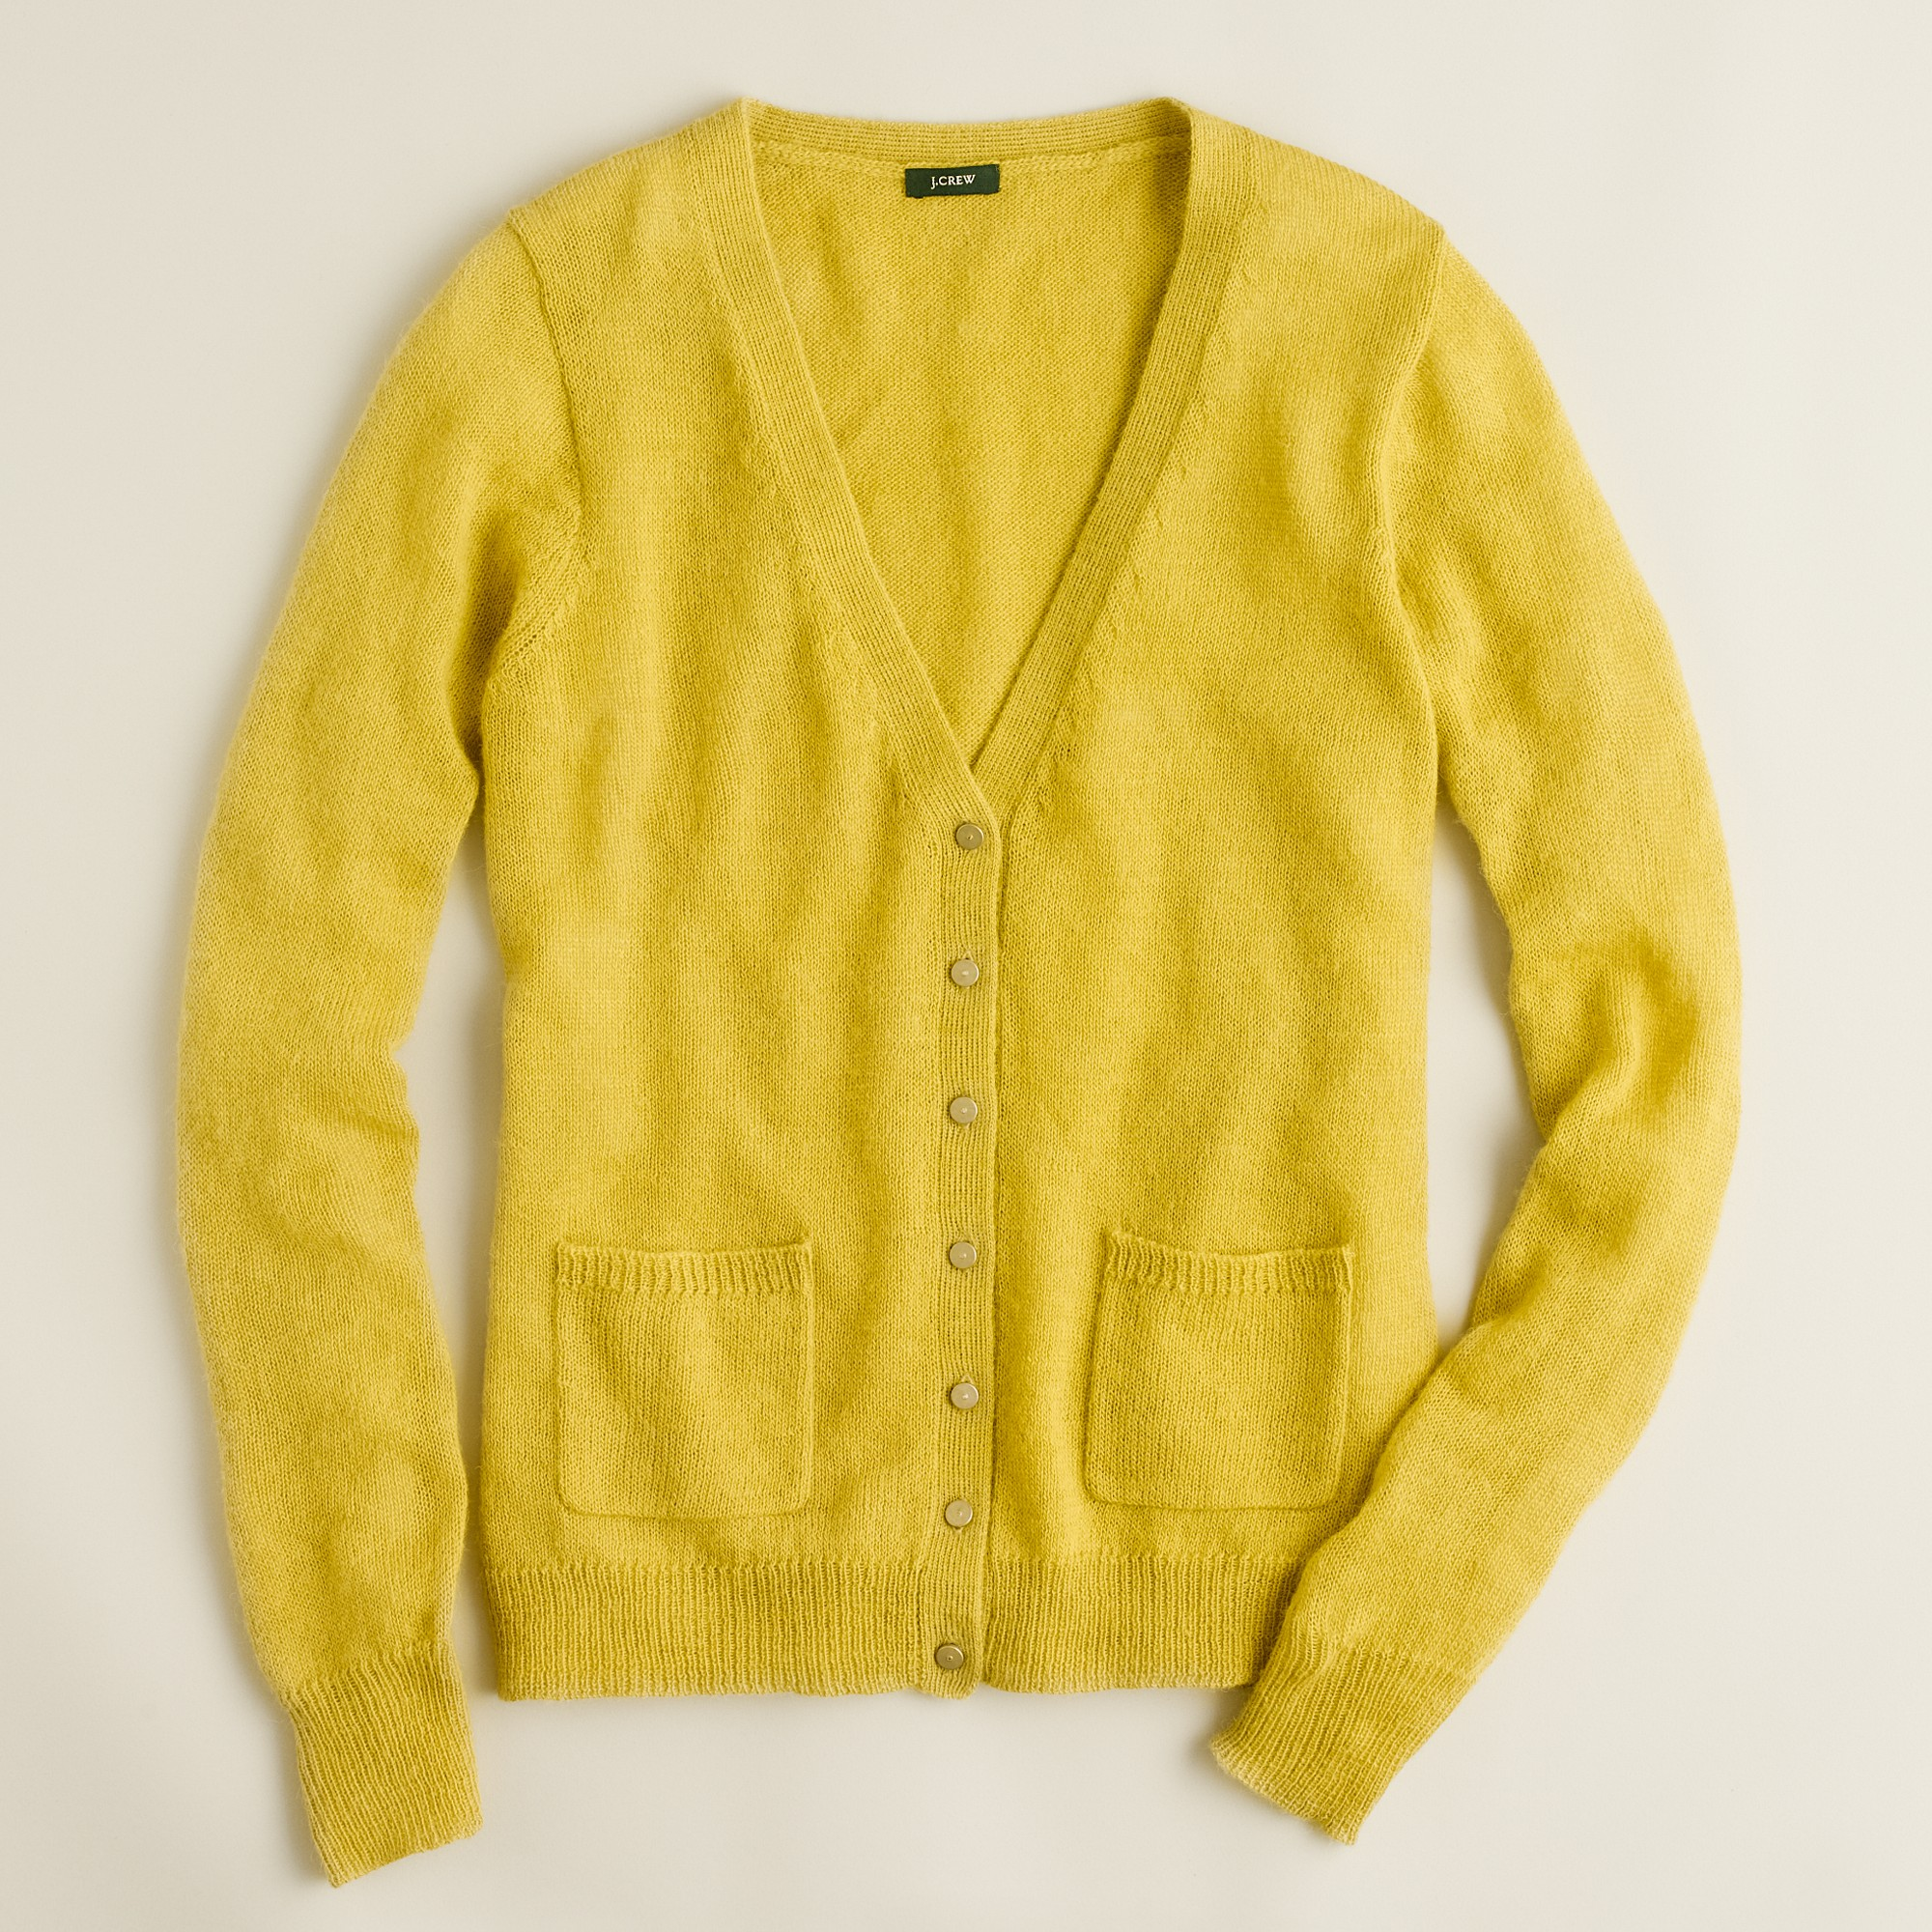 J.crew Crystal Button Cardigan in Yellow | Lyst